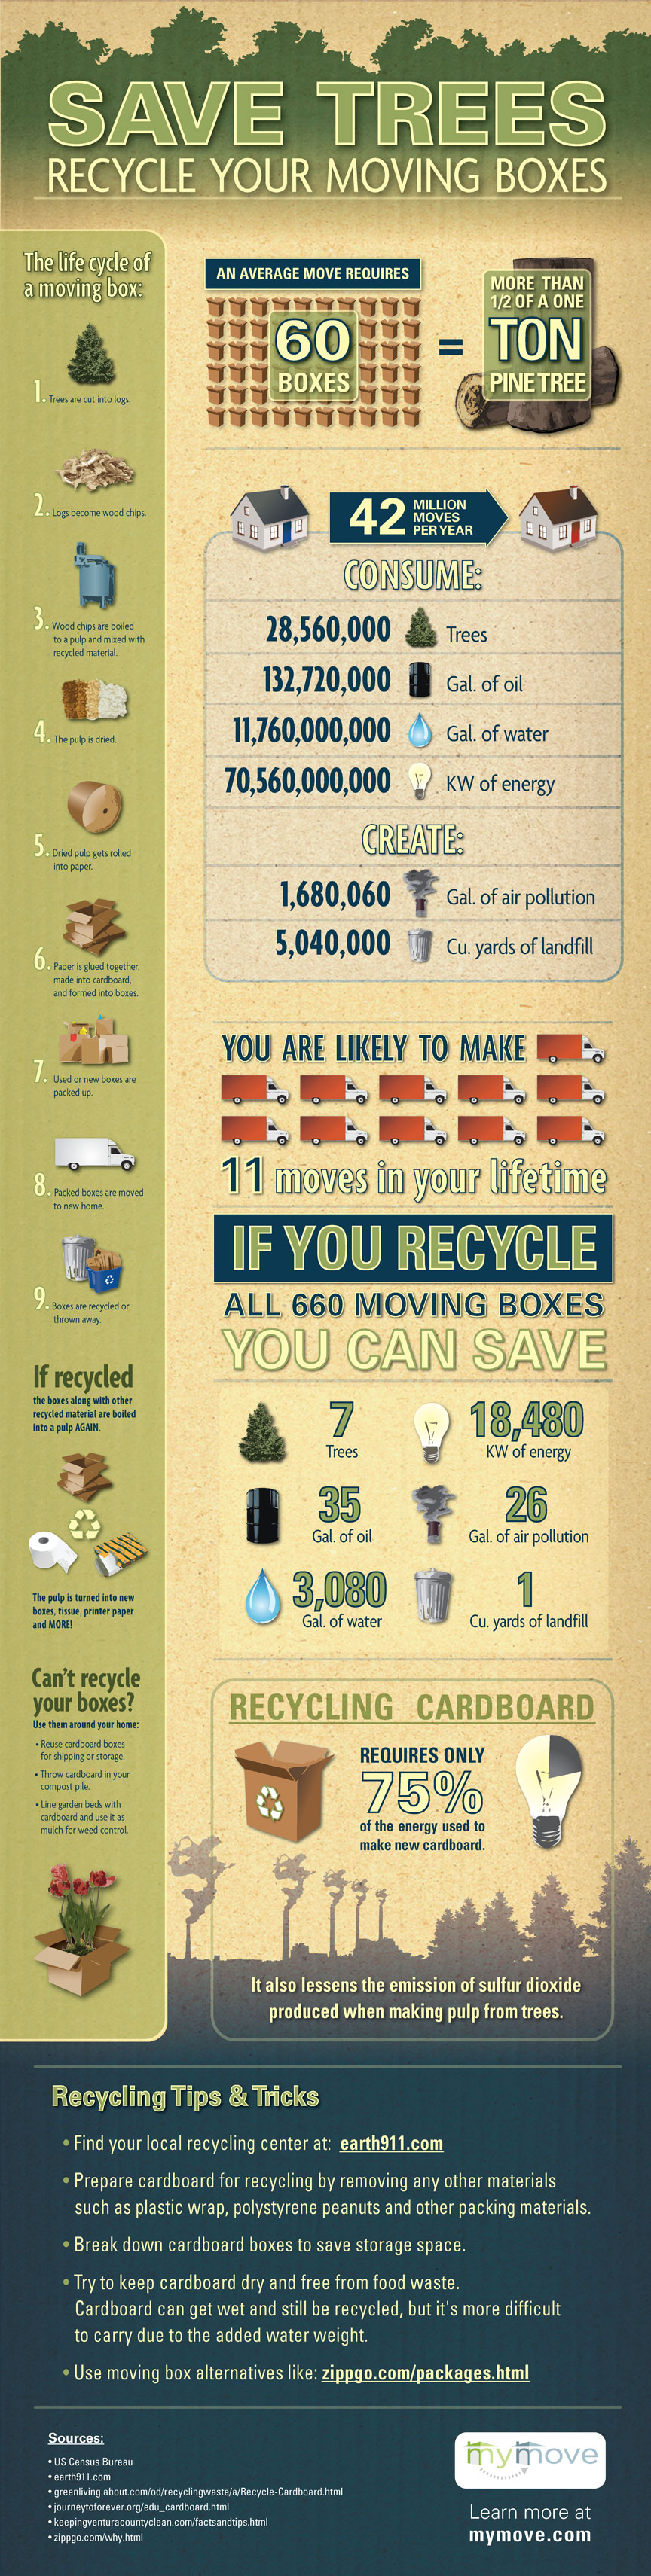 Save-Trees-Recycle-Your-Moving-Boxes-infographic